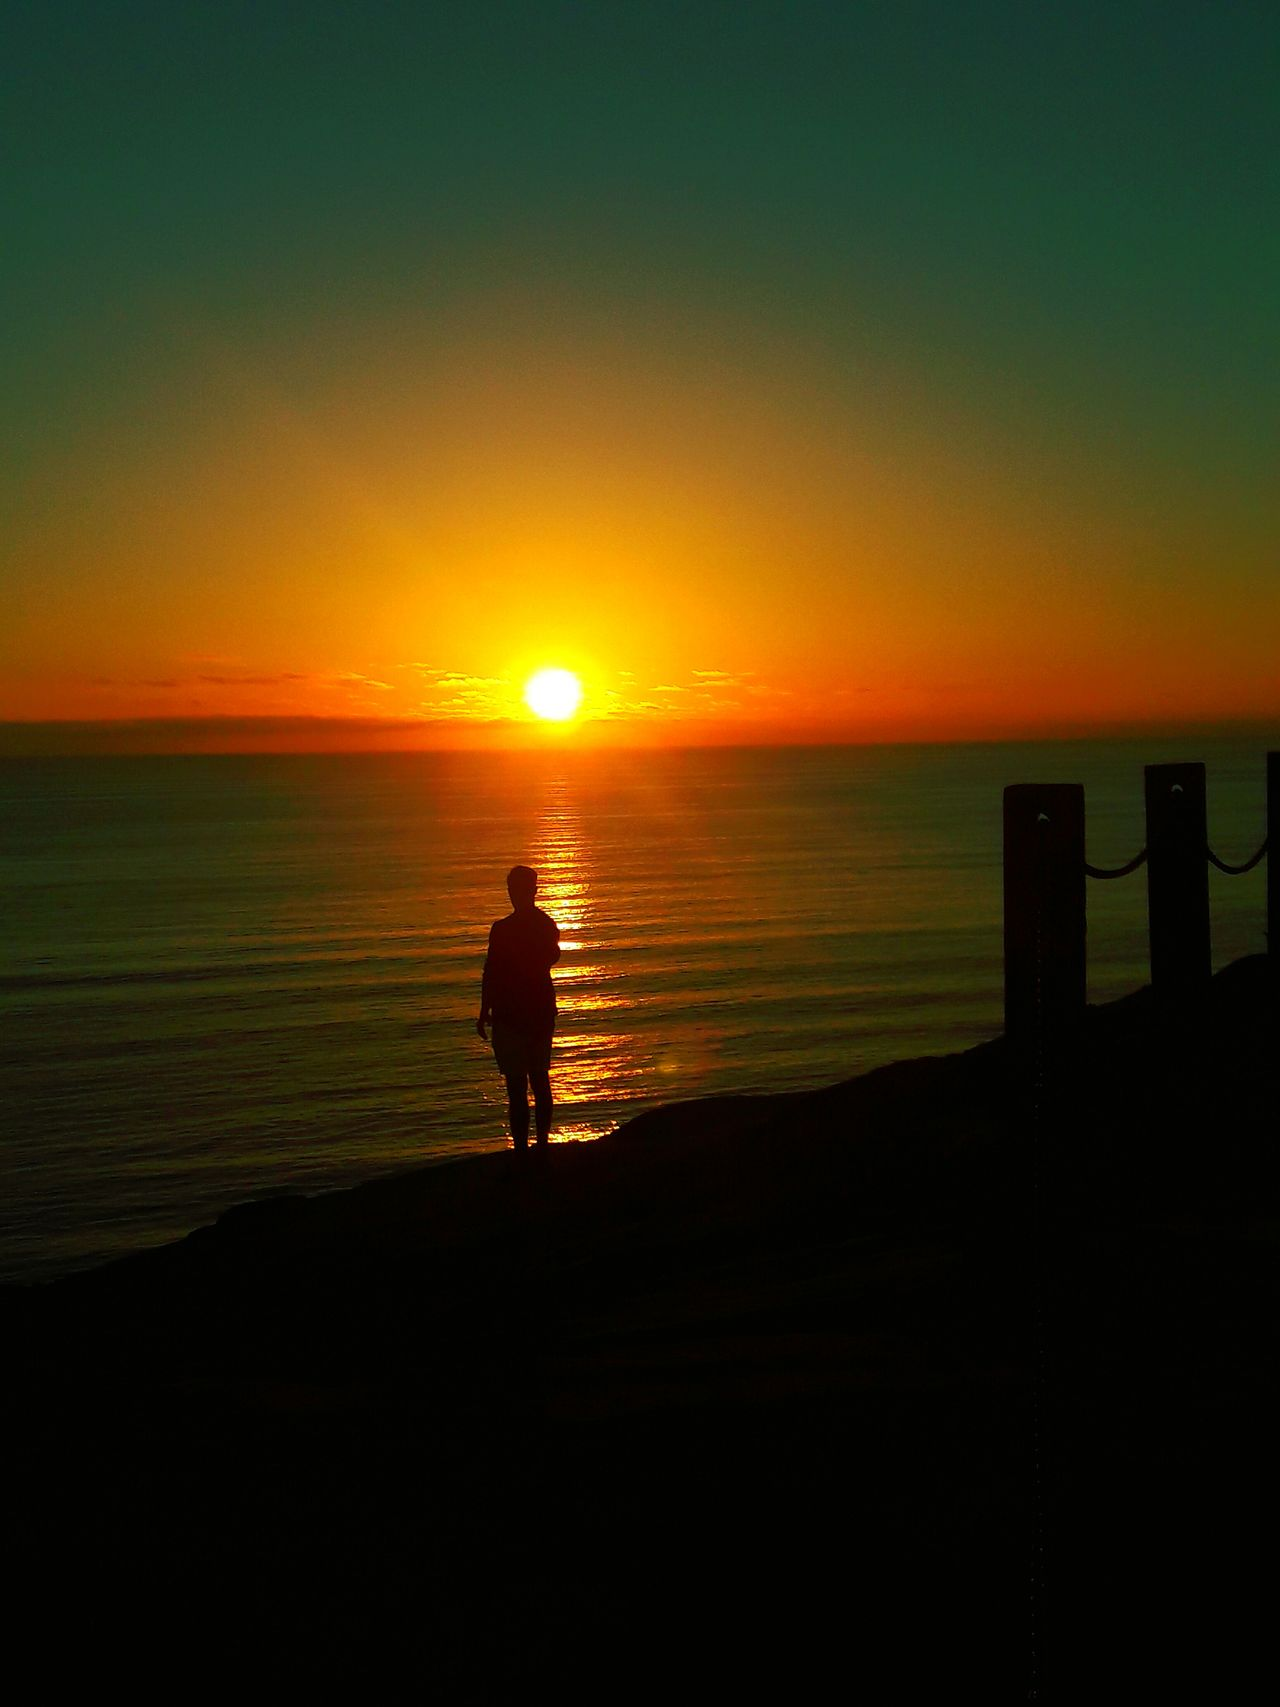 Shadow Man Sunset Sea Beach Silhouette Horizon Over Water Tranquility Beauty In Nature Sun Nature One Person Tranquil Scene Water Vacations Scenics Sky Sand Full Length Travel Destinations Weekend Activities Sunlight West Cost The Best Cost!  The Great Outdoors - 2017 EyeEm Awards EyeEmNewHere